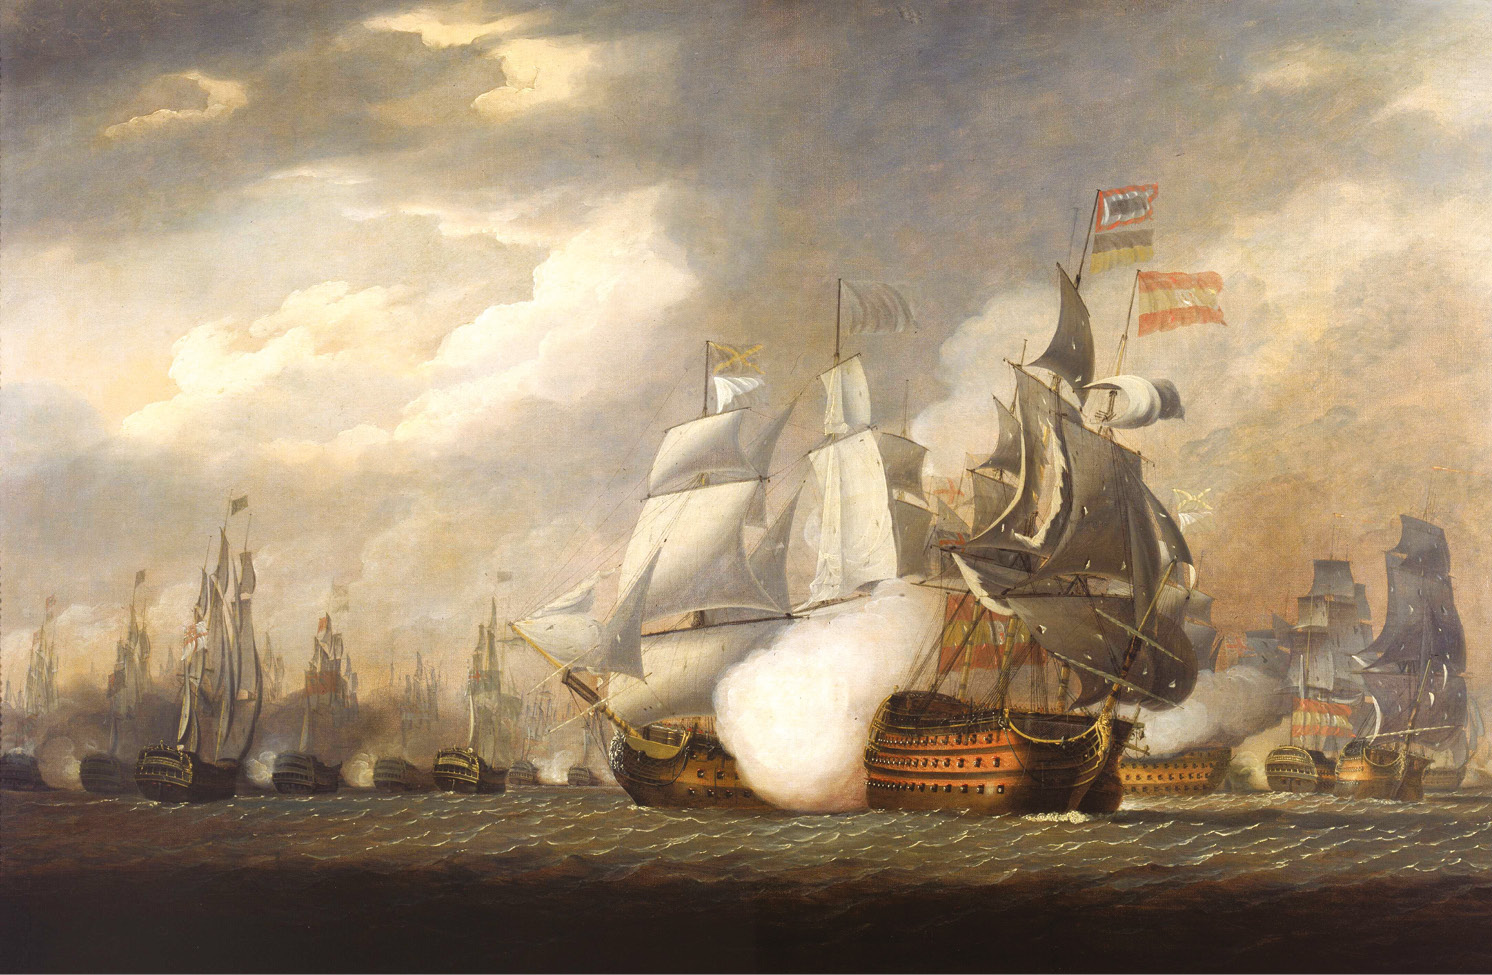 ABOVE The smashing of a Spanish fleet at the Battle of Cape St Vincent on 14 February 1797 torpedoed the main French plan for an invasion of the British Isles.